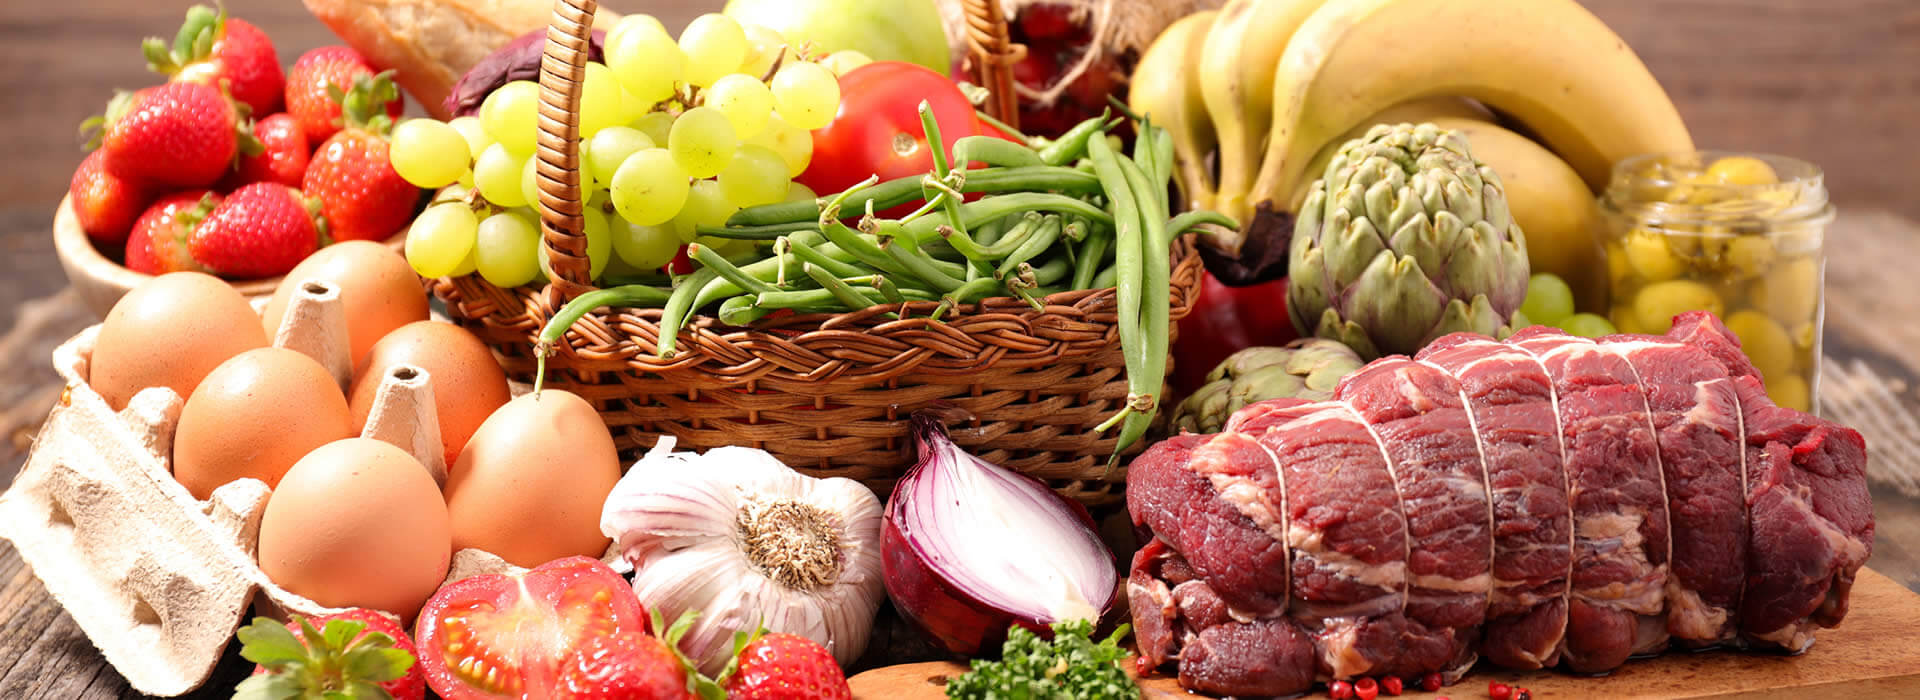 Fruits, Vegetable, Seafood and Meat Exporter in Oman